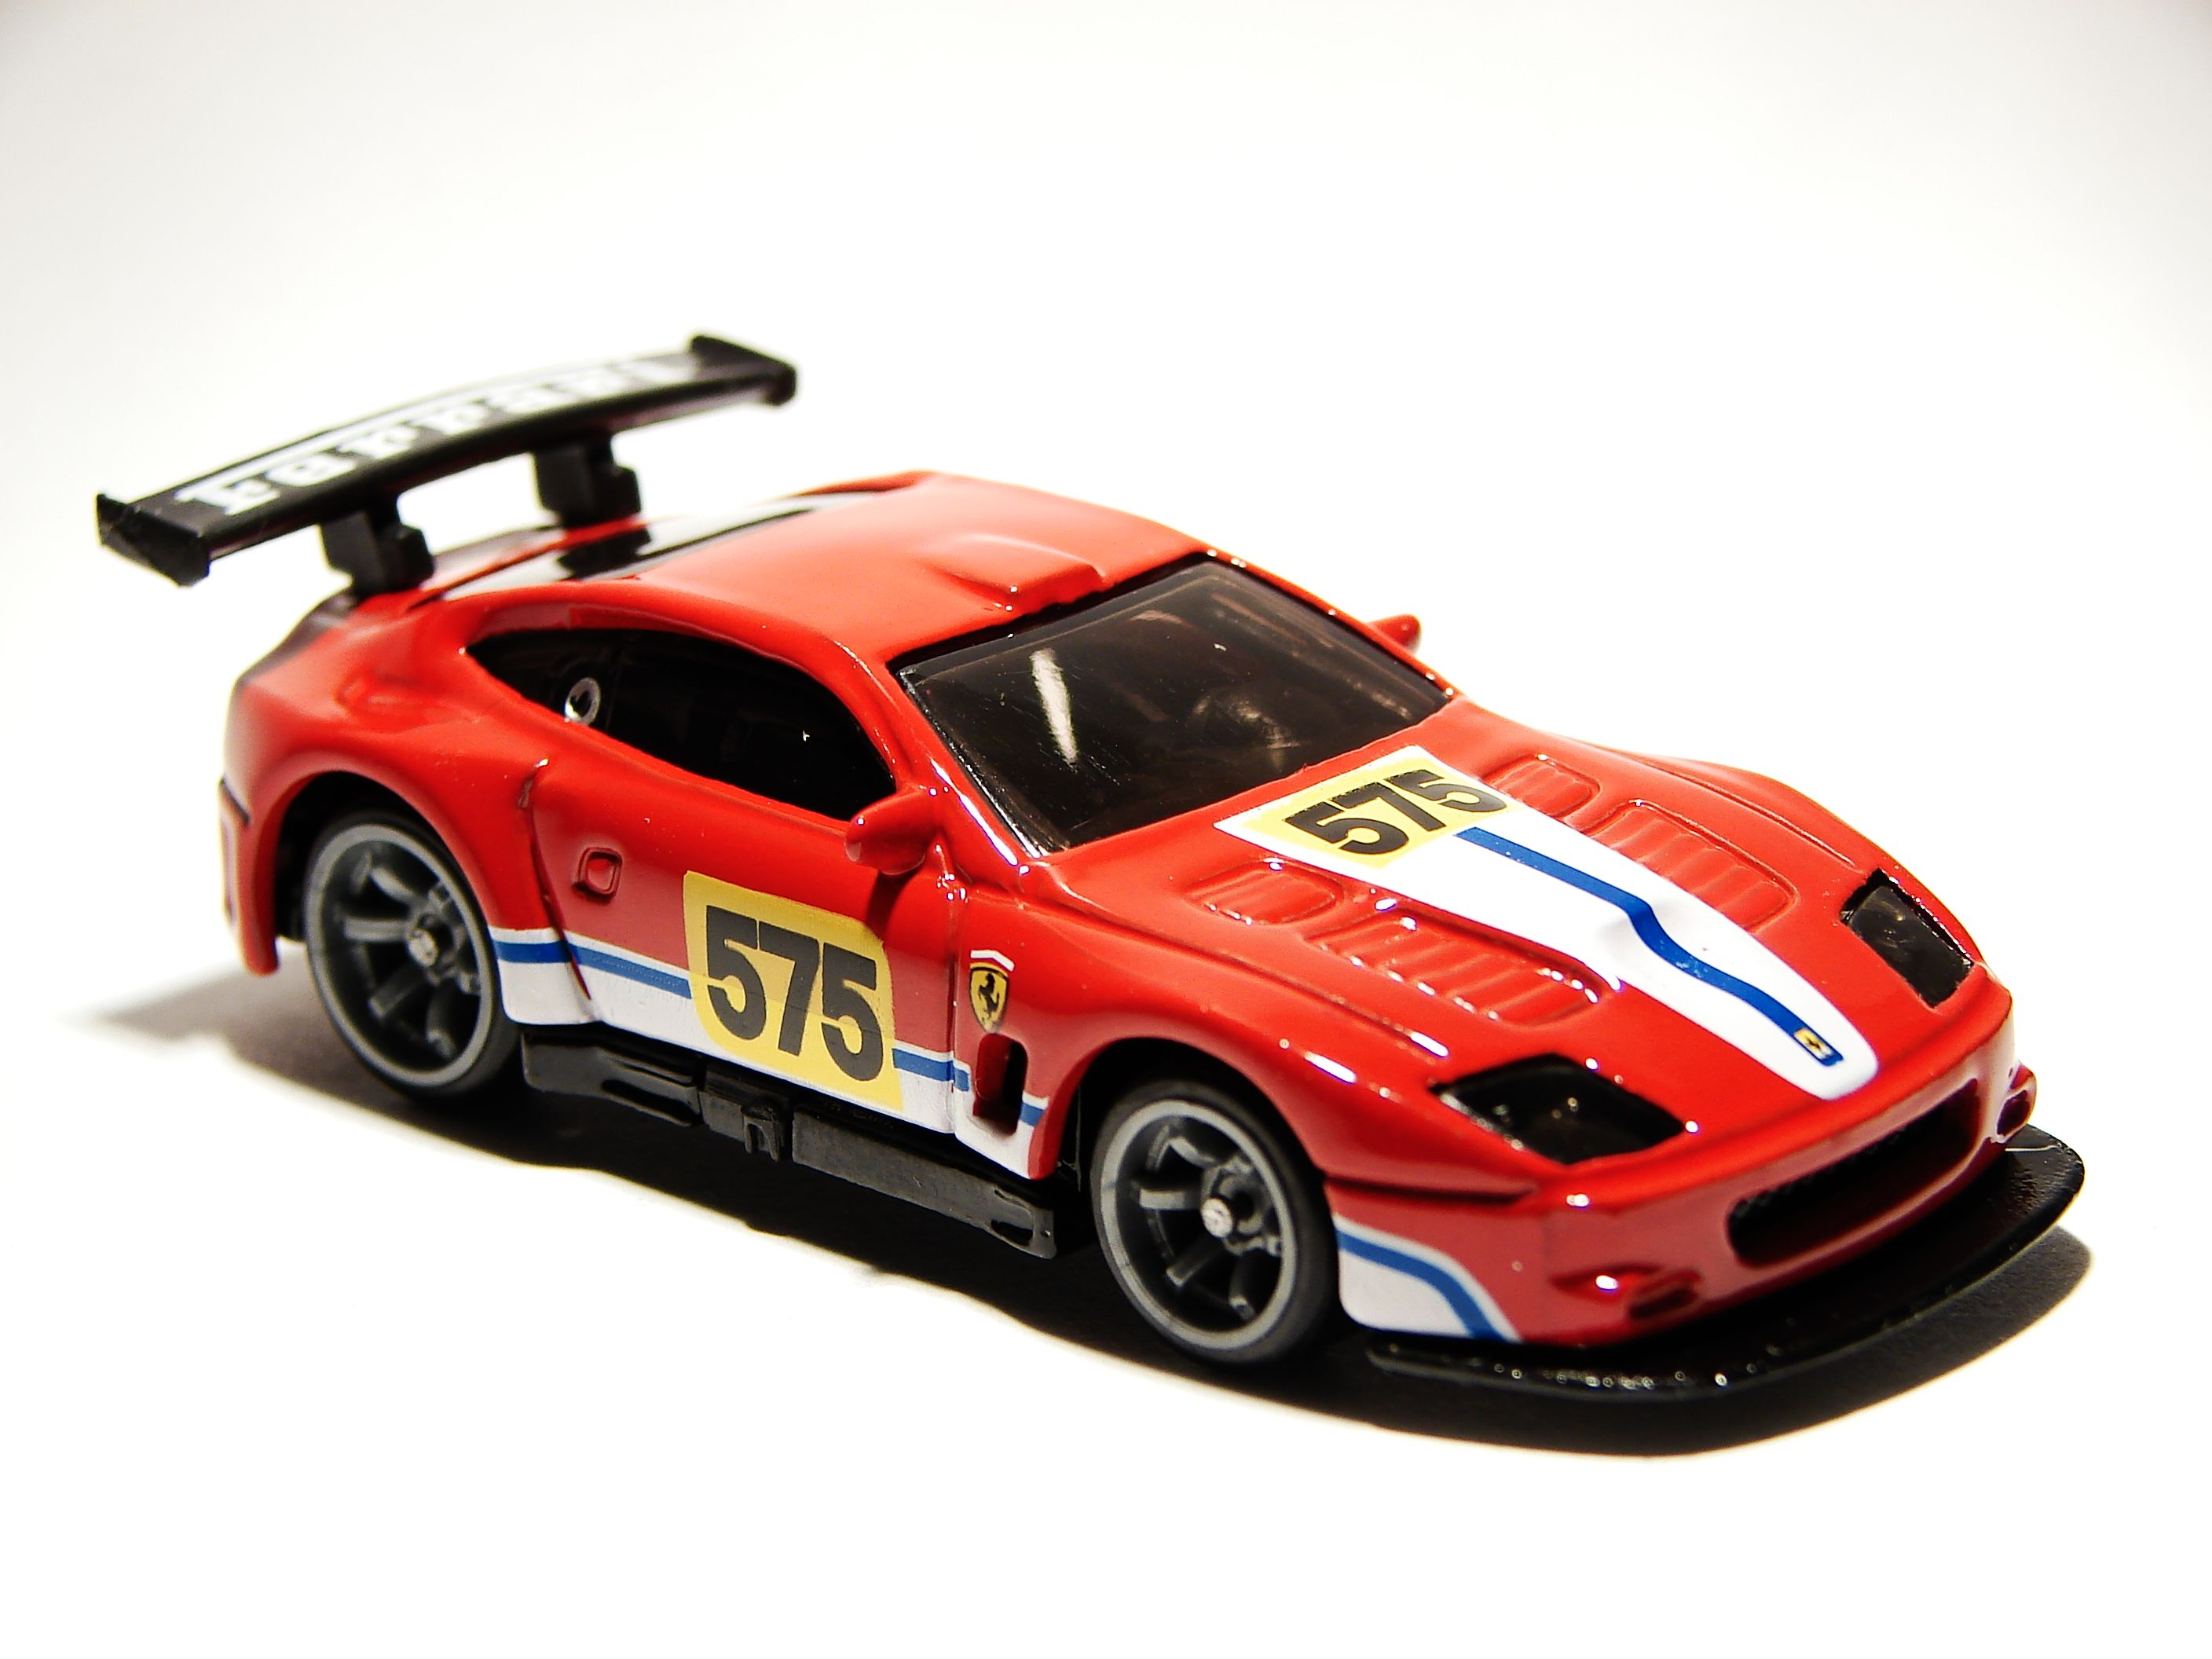 ferrari 575 gtc hot wheels hot wheels custom hot. Black Bedroom Furniture Sets. Home Design Ideas